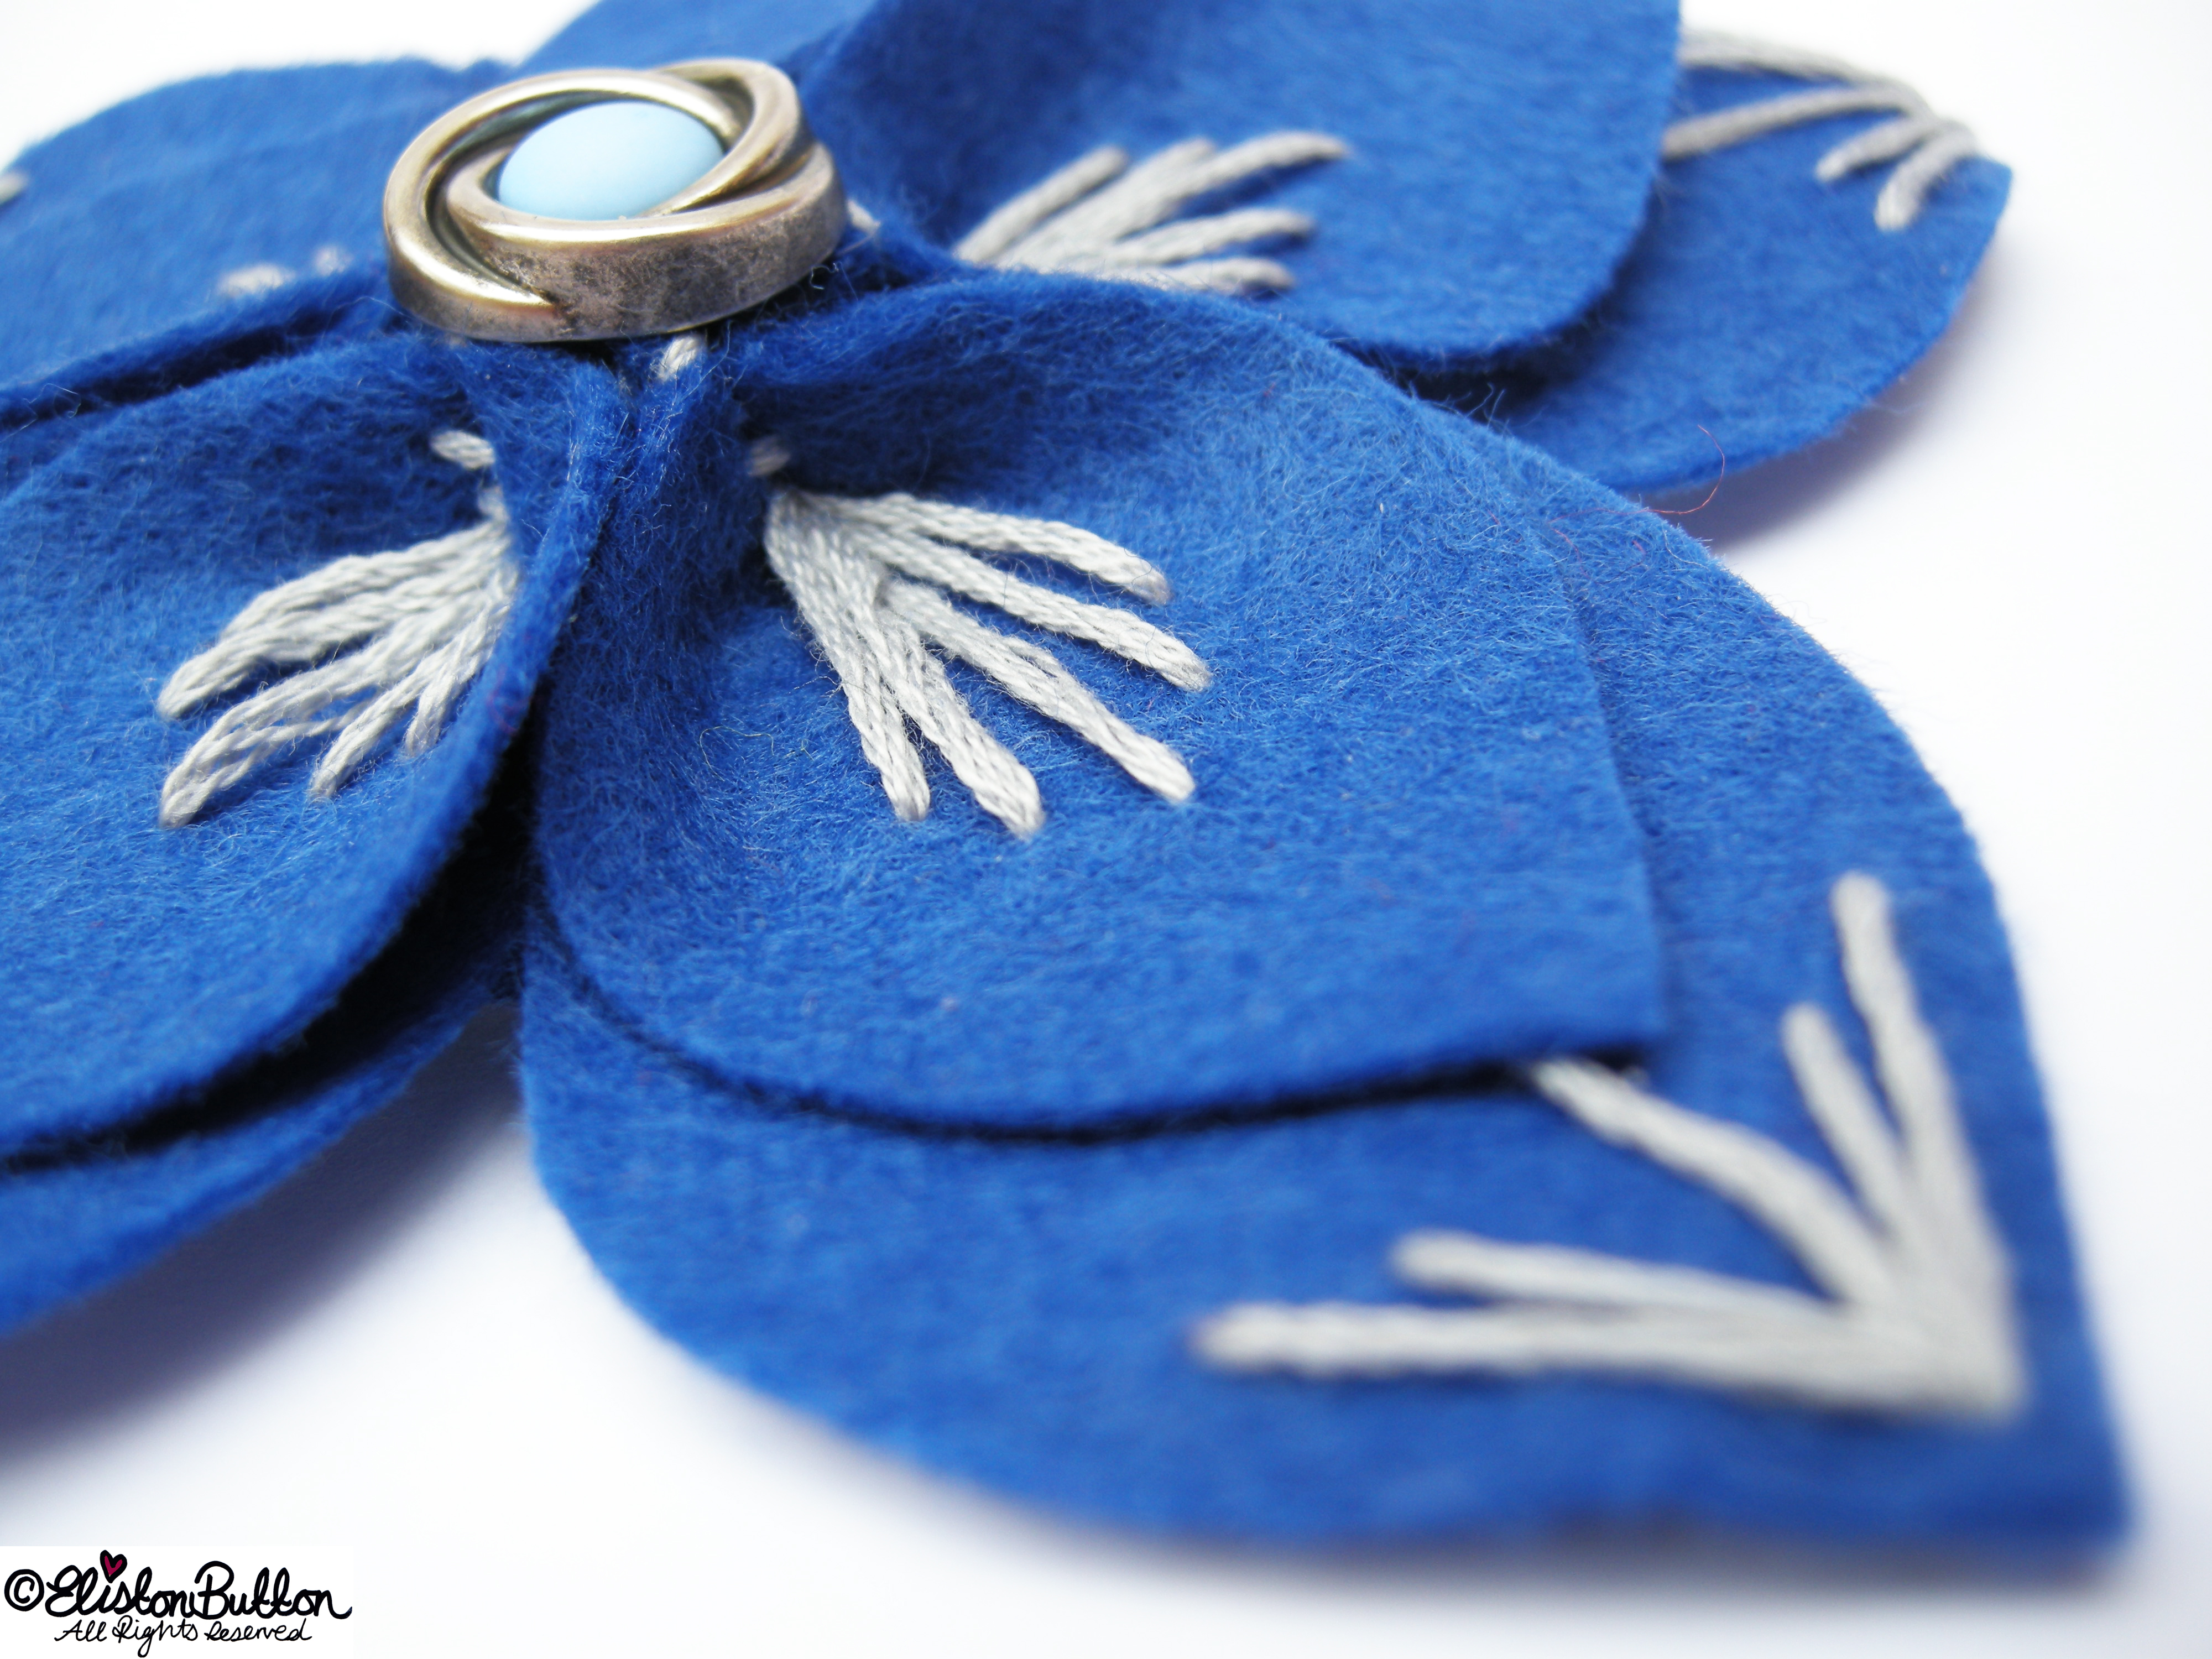 Out of the Blue Embroidered Felt Flower Brooch - Embroidery Detail - 27 Before 27 - Out of the Blue at www.elistonbutton.com - Eliston Button - That Crafty Kid – Art, Design, Craft & Adventure.